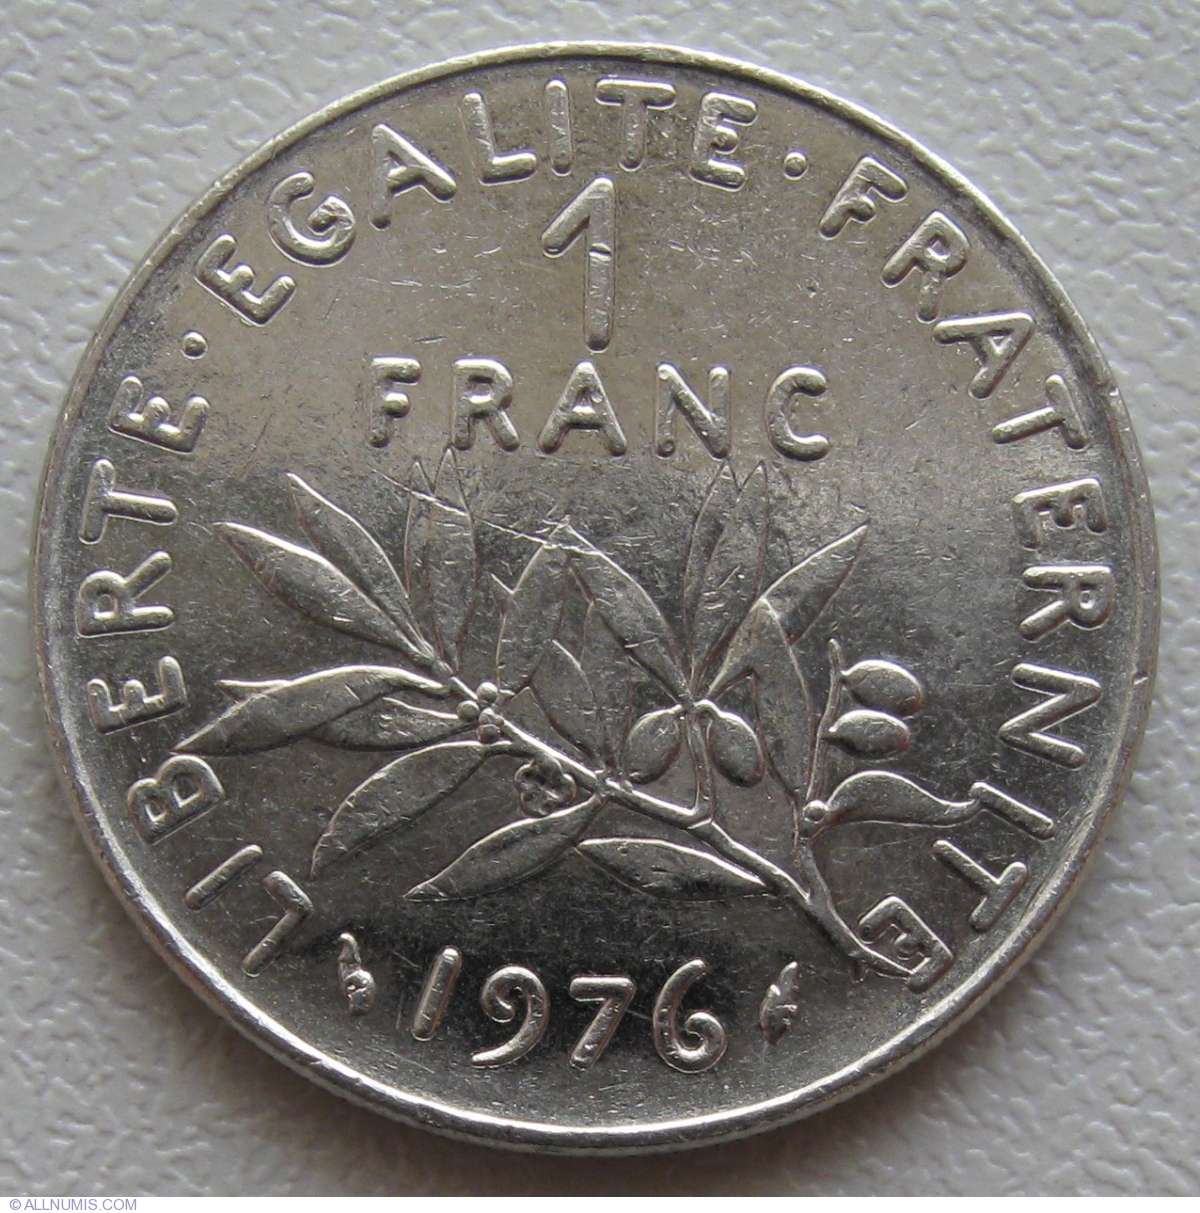 1 Franc 1976, Fifth Republic (1971-1985) - France - Coin - 869